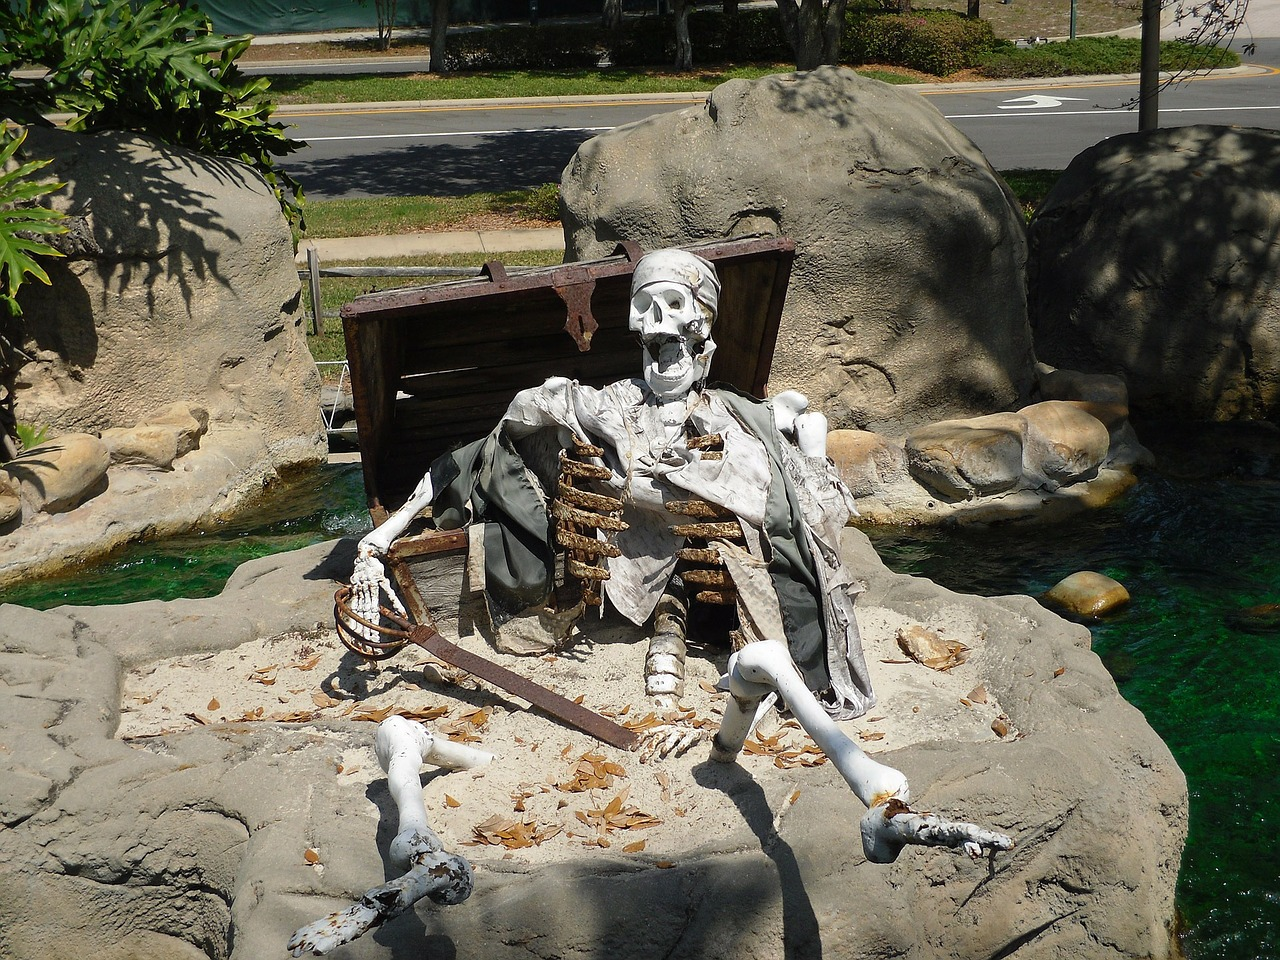 a sculpture depicting the skeletal bones of a pirate with sword and treasure chest